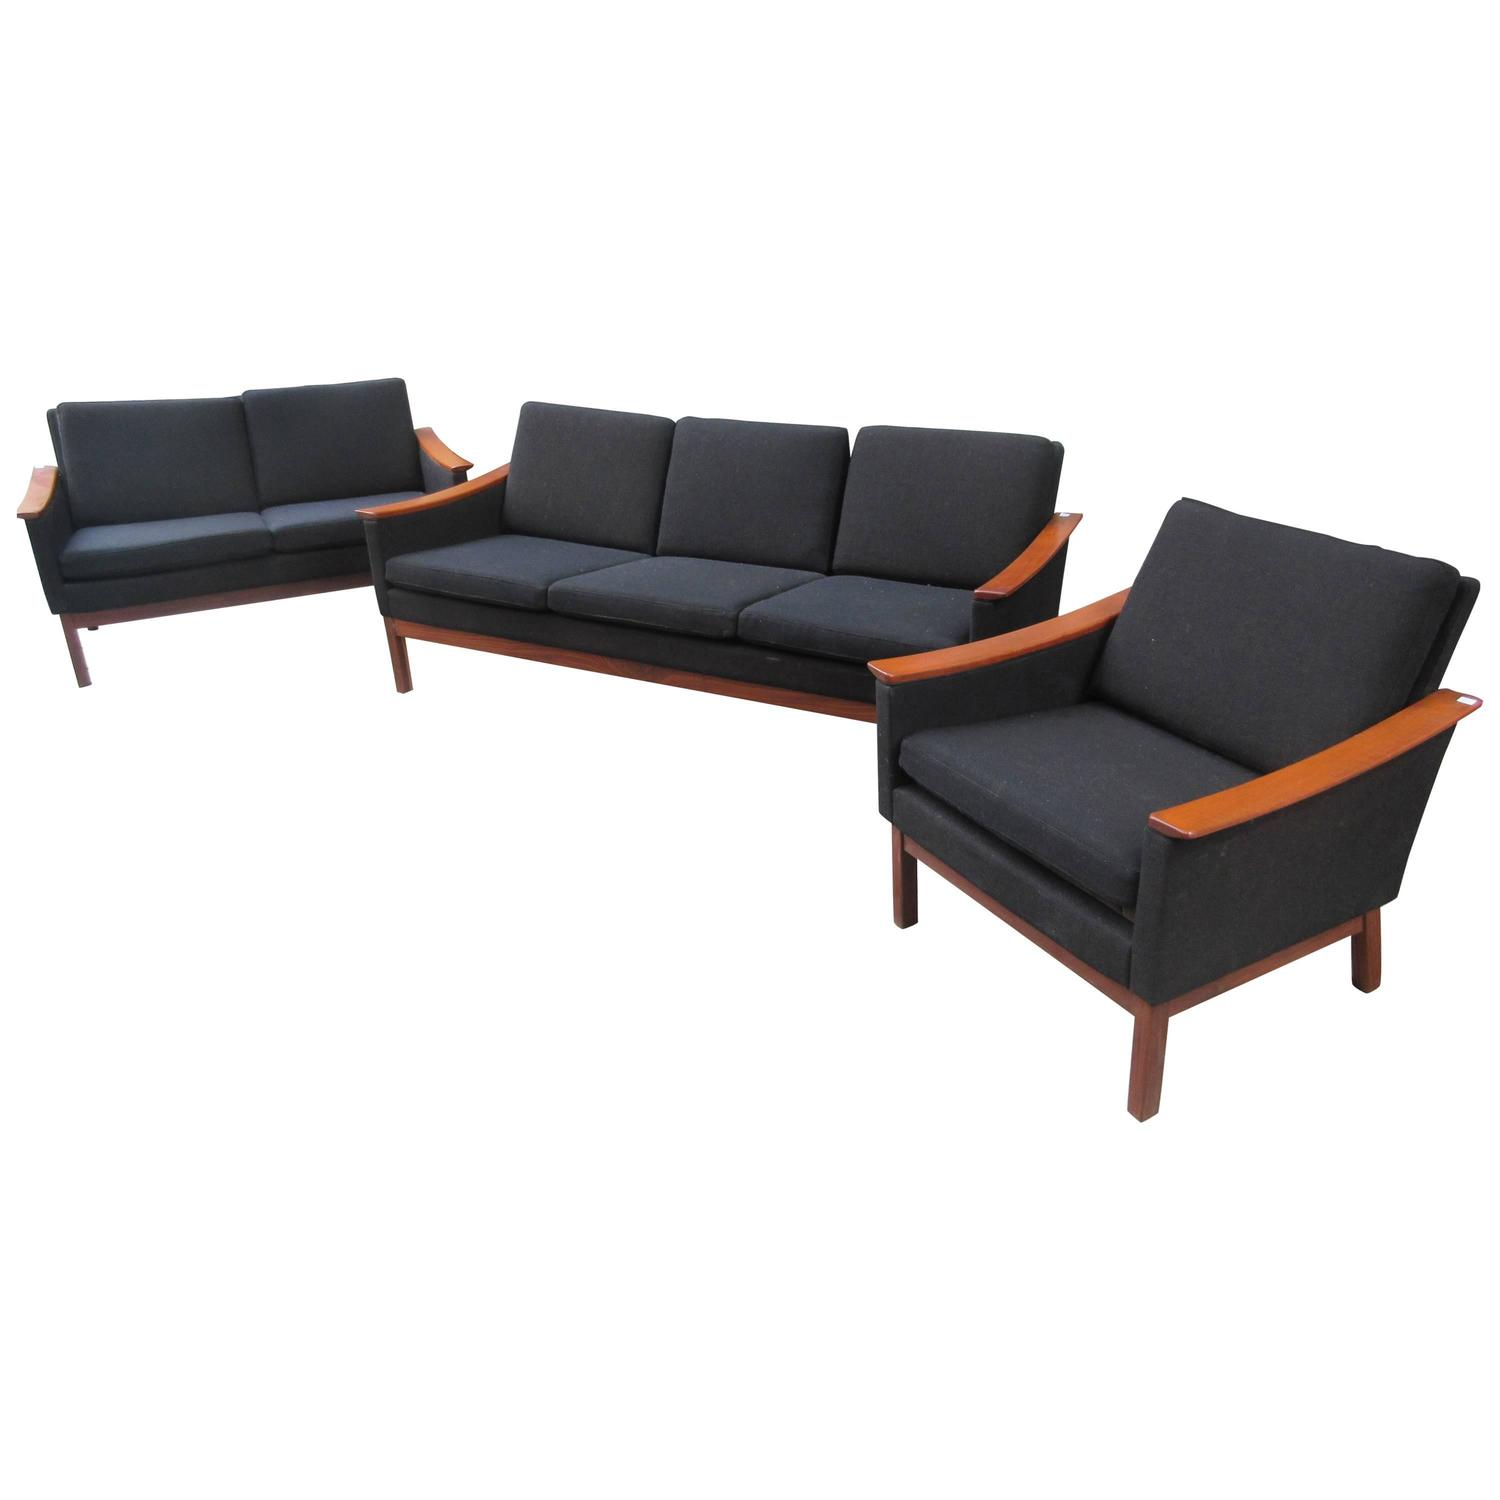 Teak Norwegian Suite Of Living Room Seating For Sale At